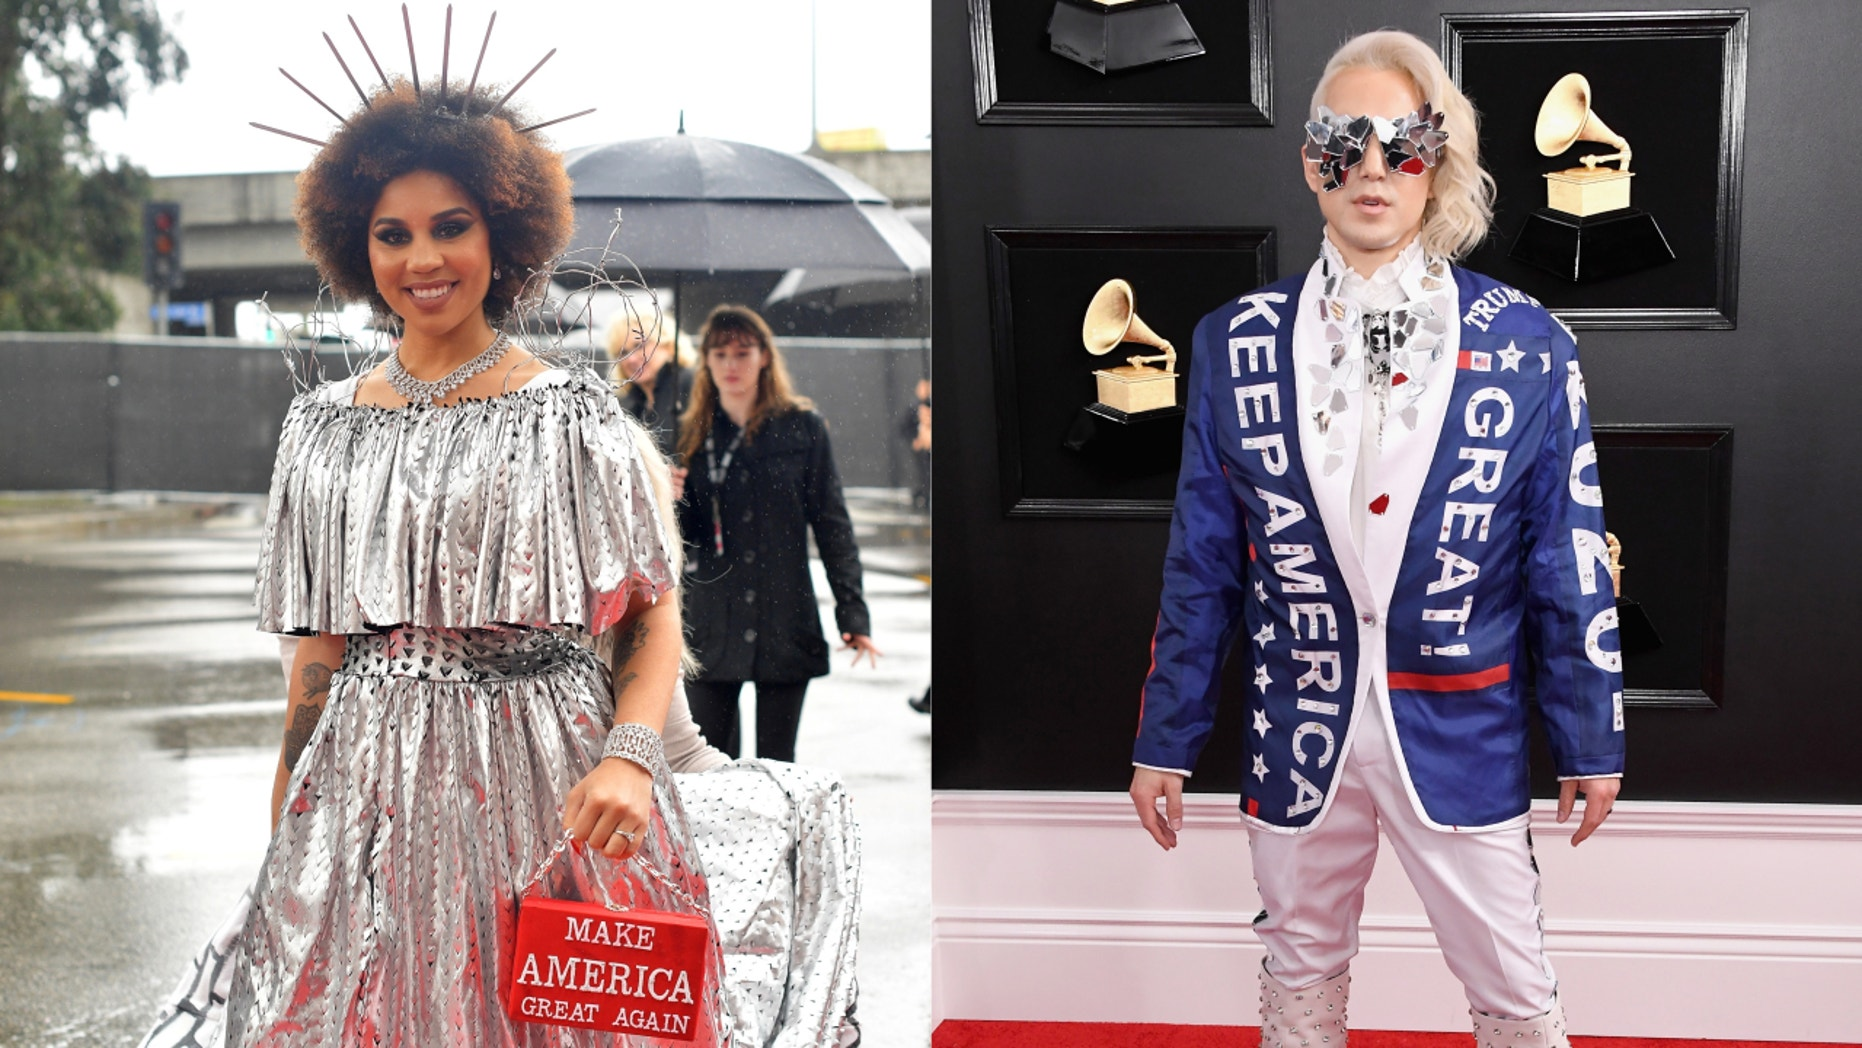 Two singers make political statements on Grammy carpet